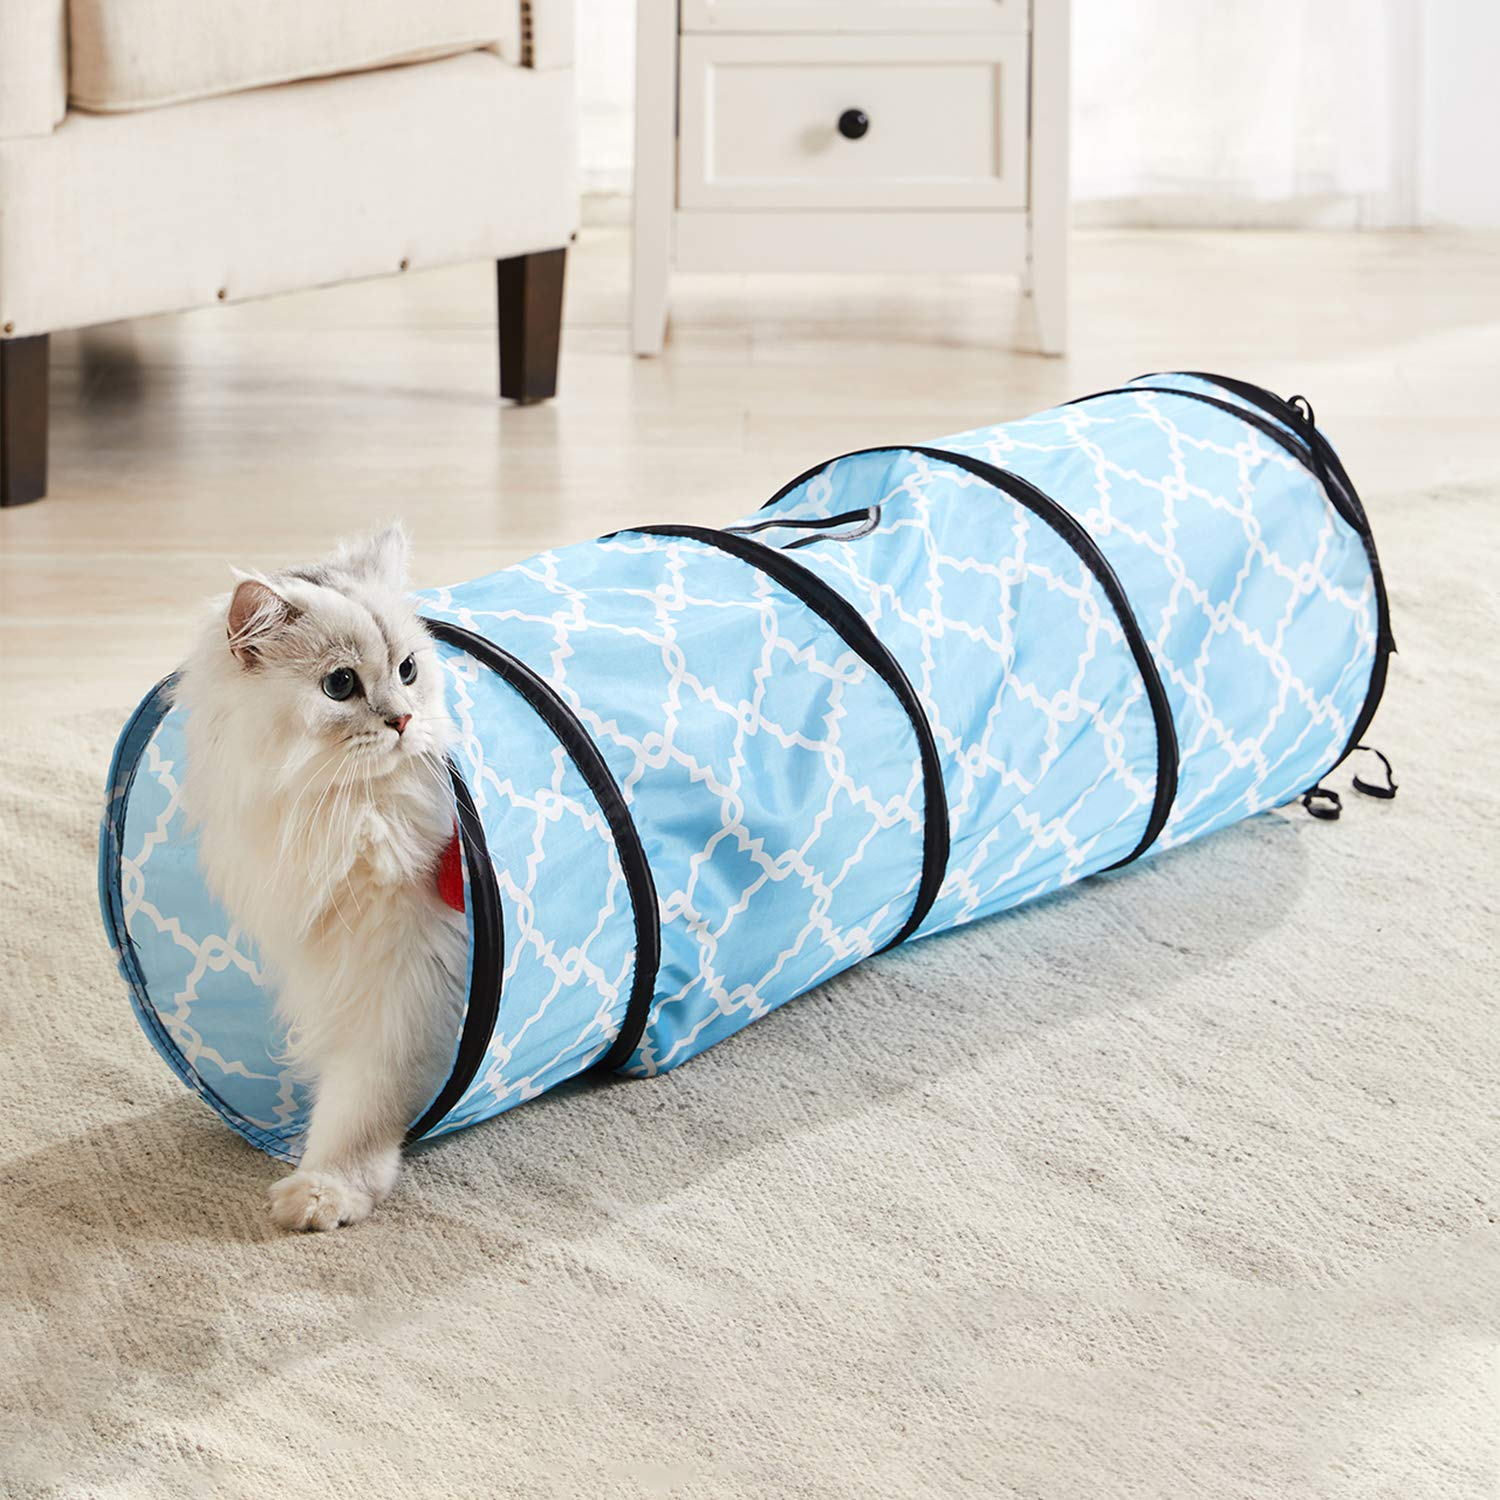 Kitty City Large Cat Tunnel Bed-50% OFF TODAY!